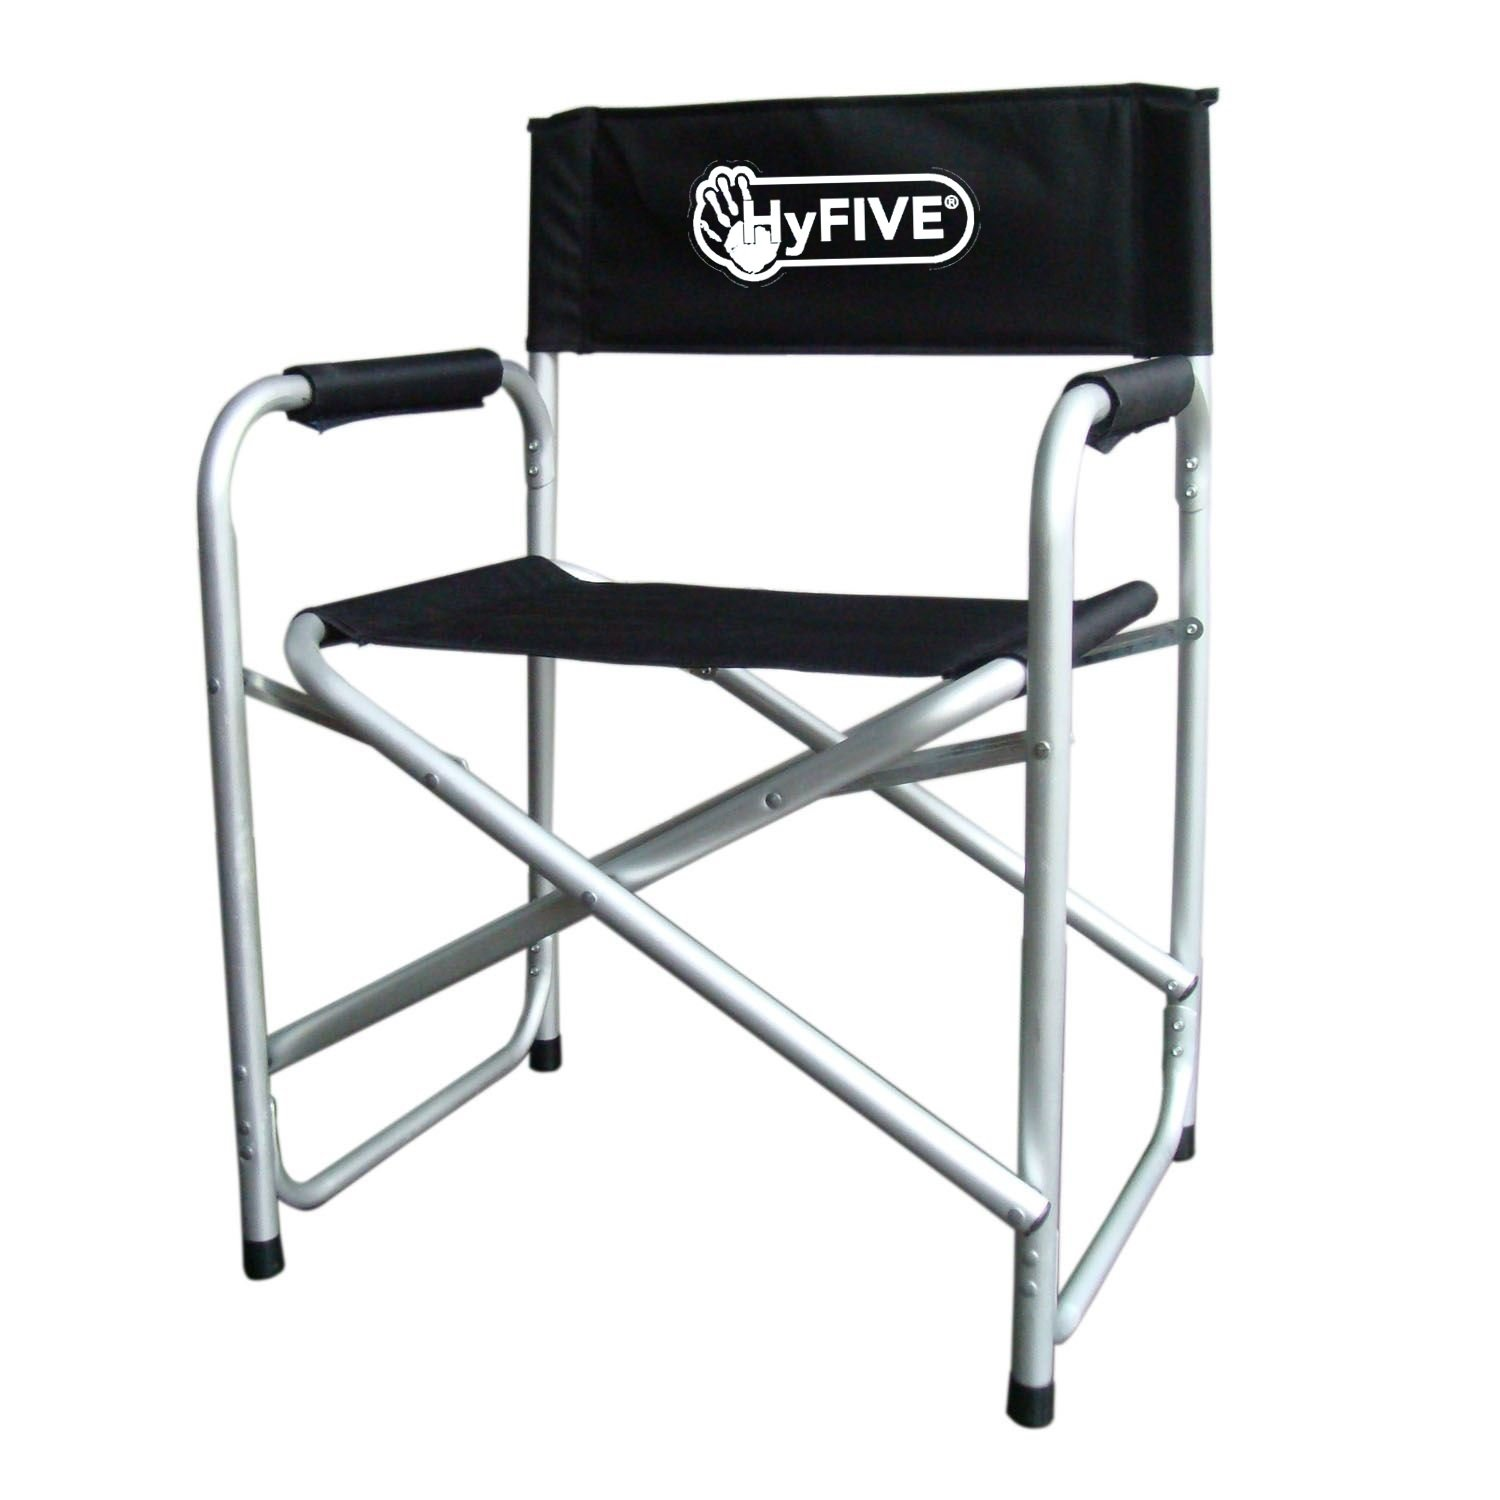 Black Aluminium Directors Folding Chair With Arm Rest Camping Fishing Garden